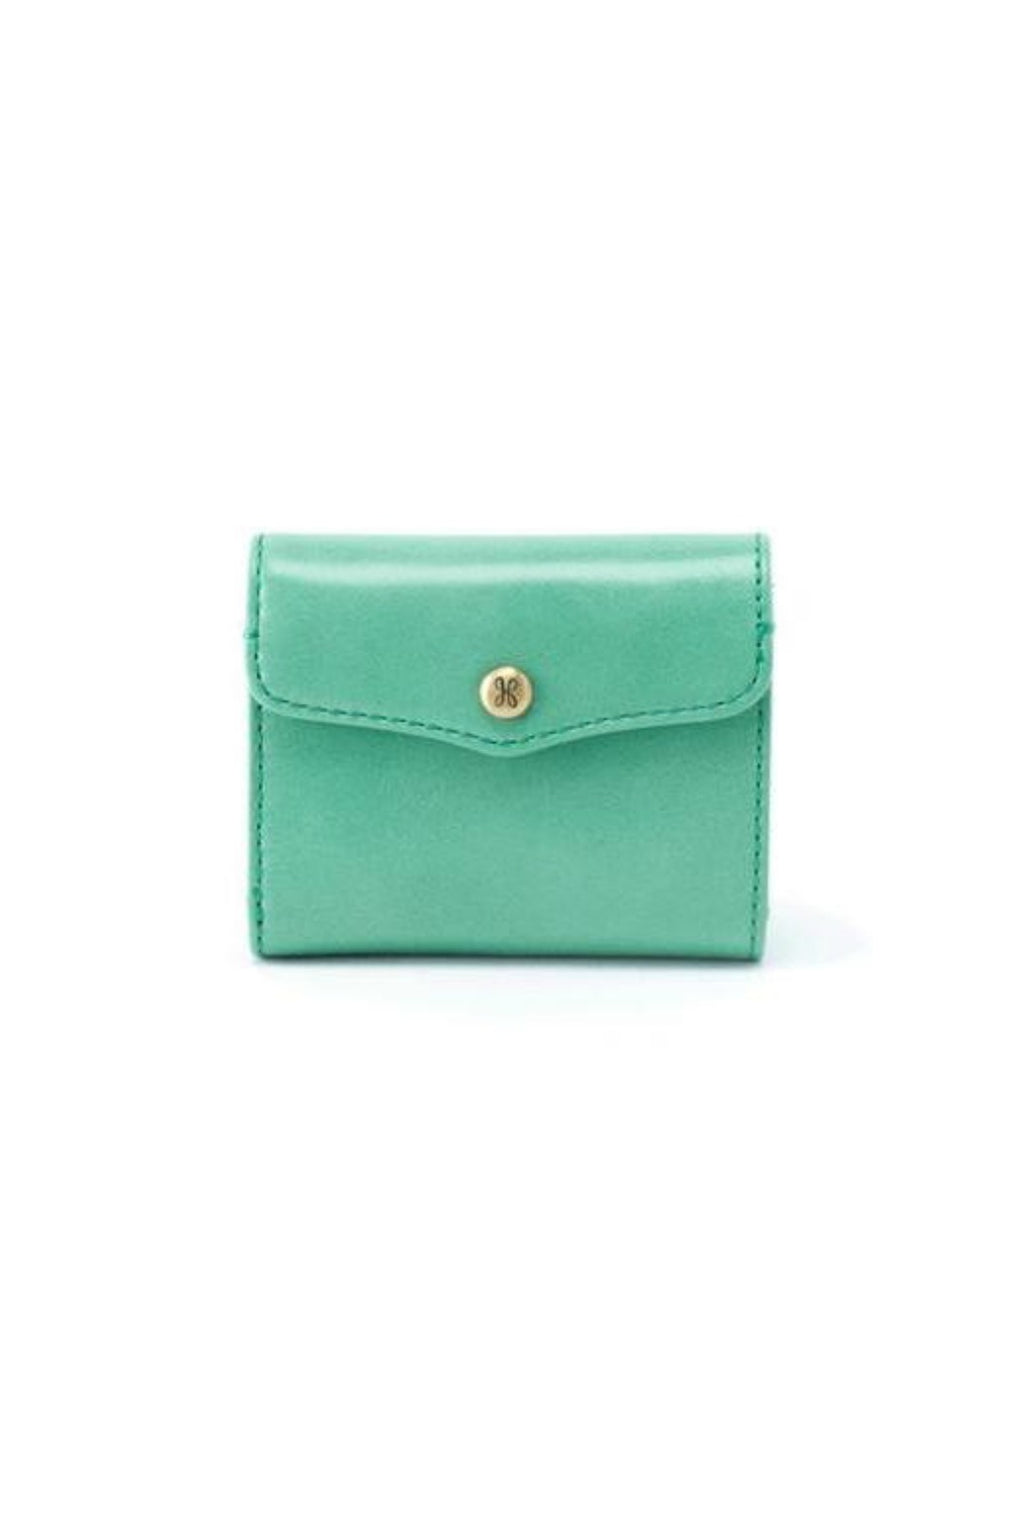 Hobo Luck Wallet in Mint